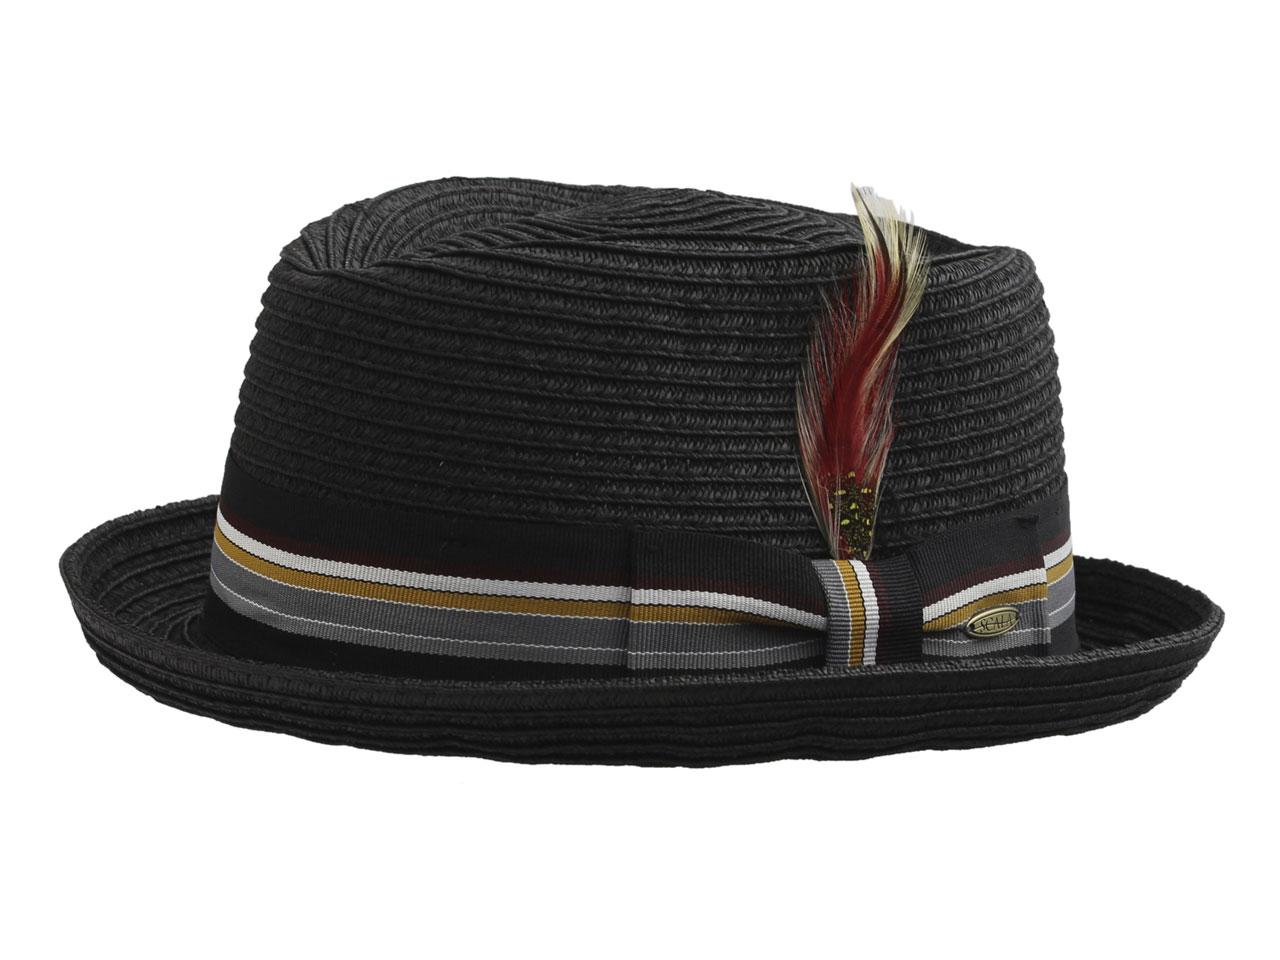 c2e9ad3436c Scala Men's Paper Braid Pork Pie Hat by Scala